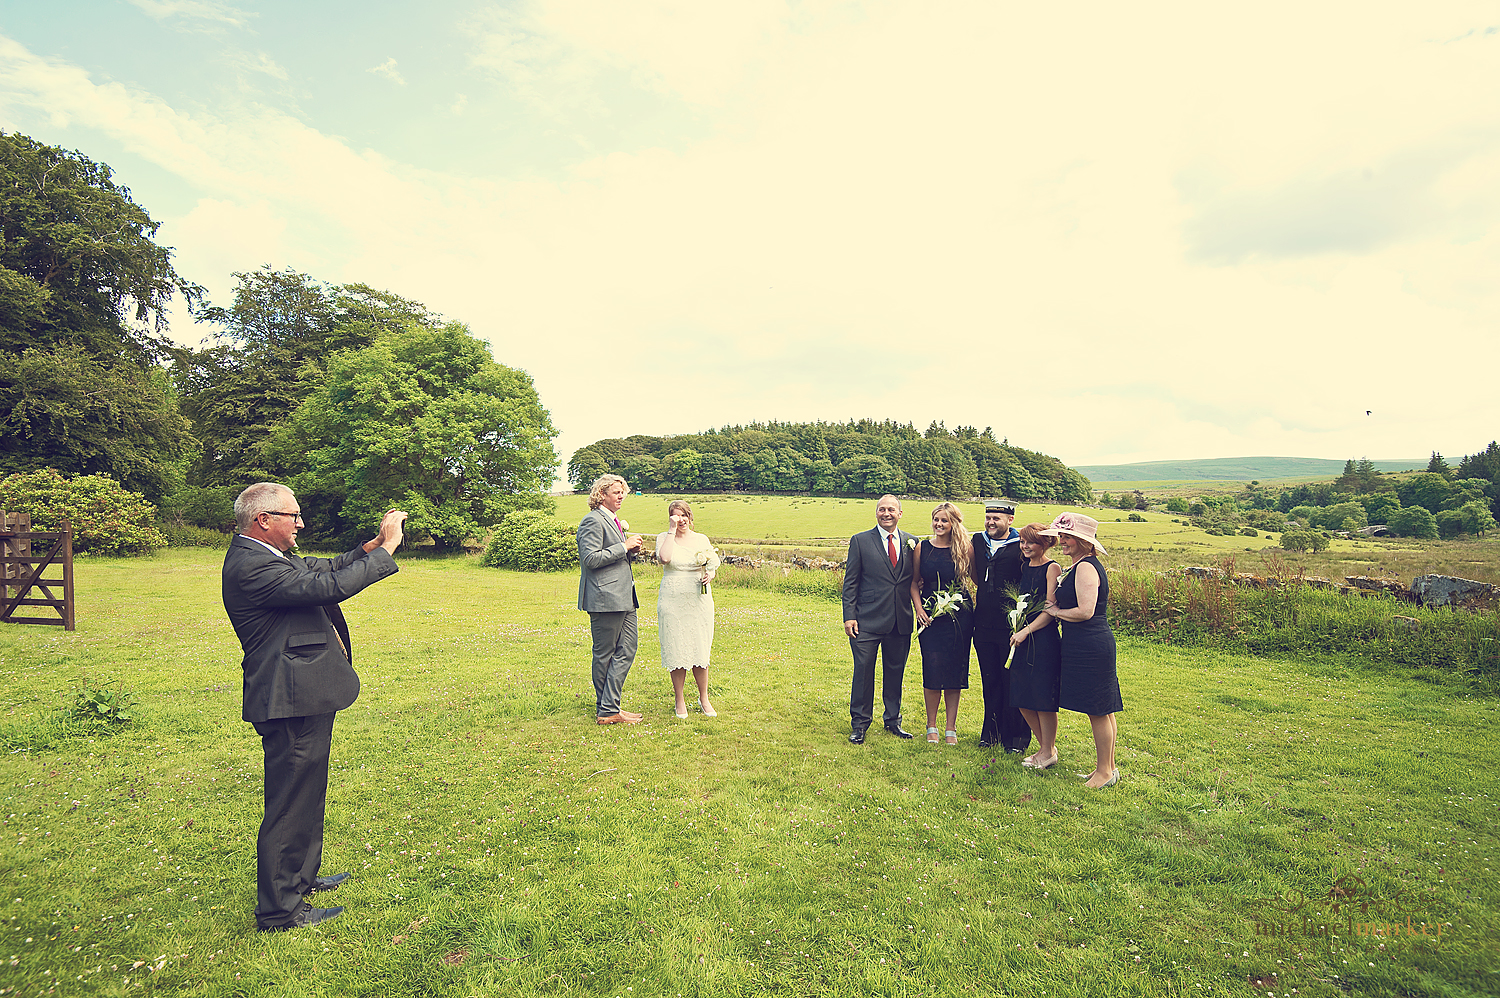 Guests-wedding-photos-at-Prince-Hall-Dartmoor